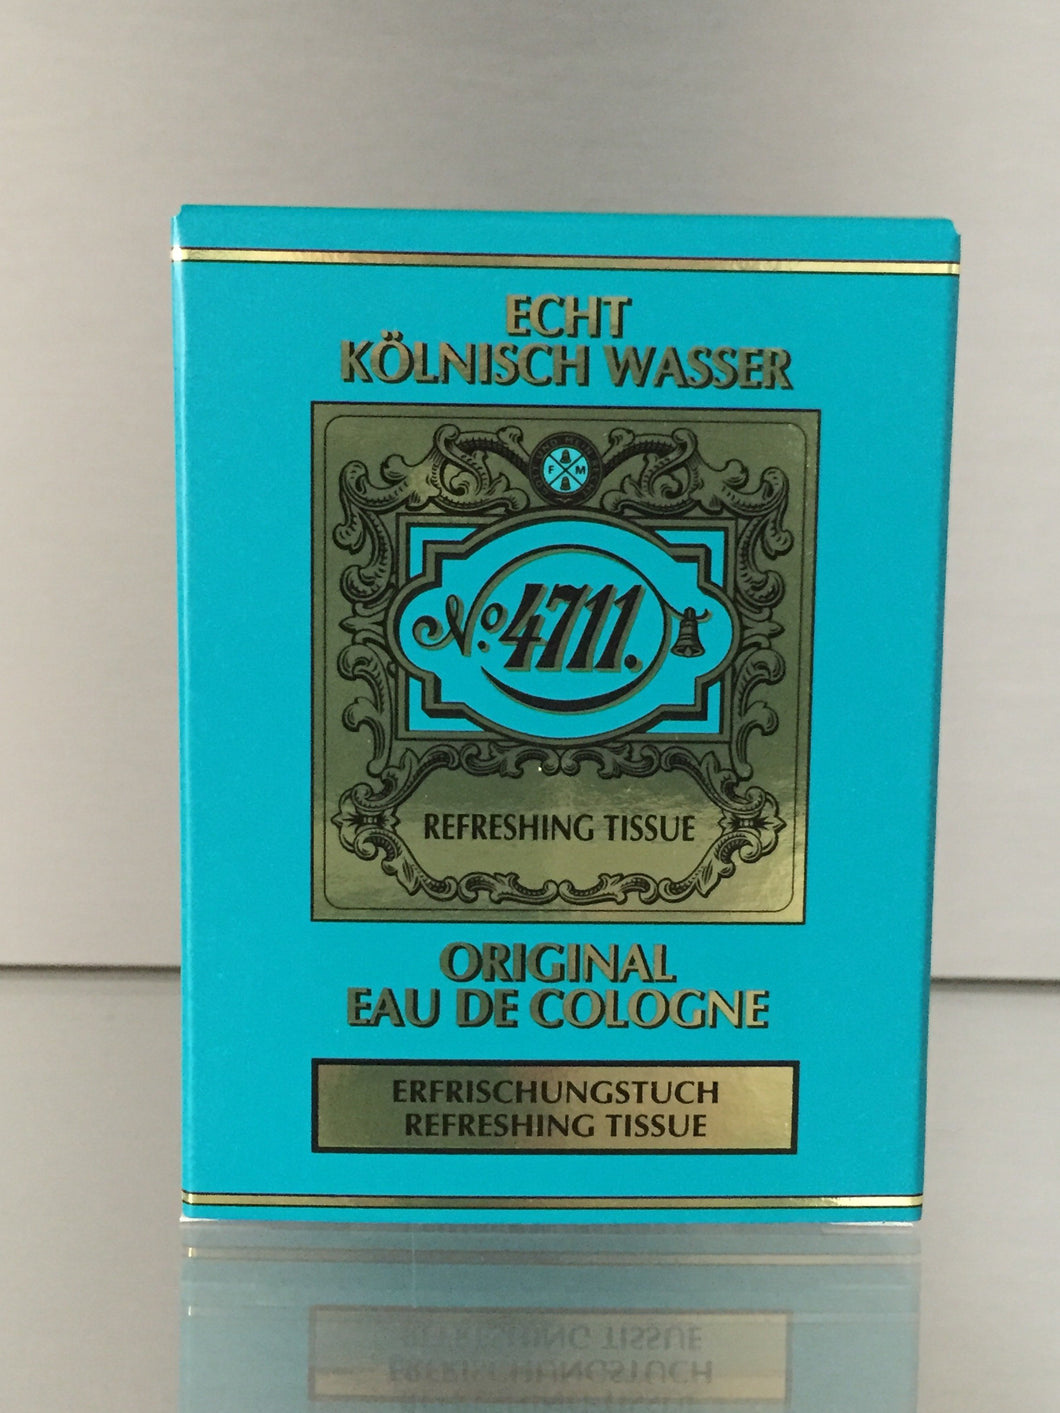 4711 Original Eau de Cologne, Refreshing Tissues - 4711